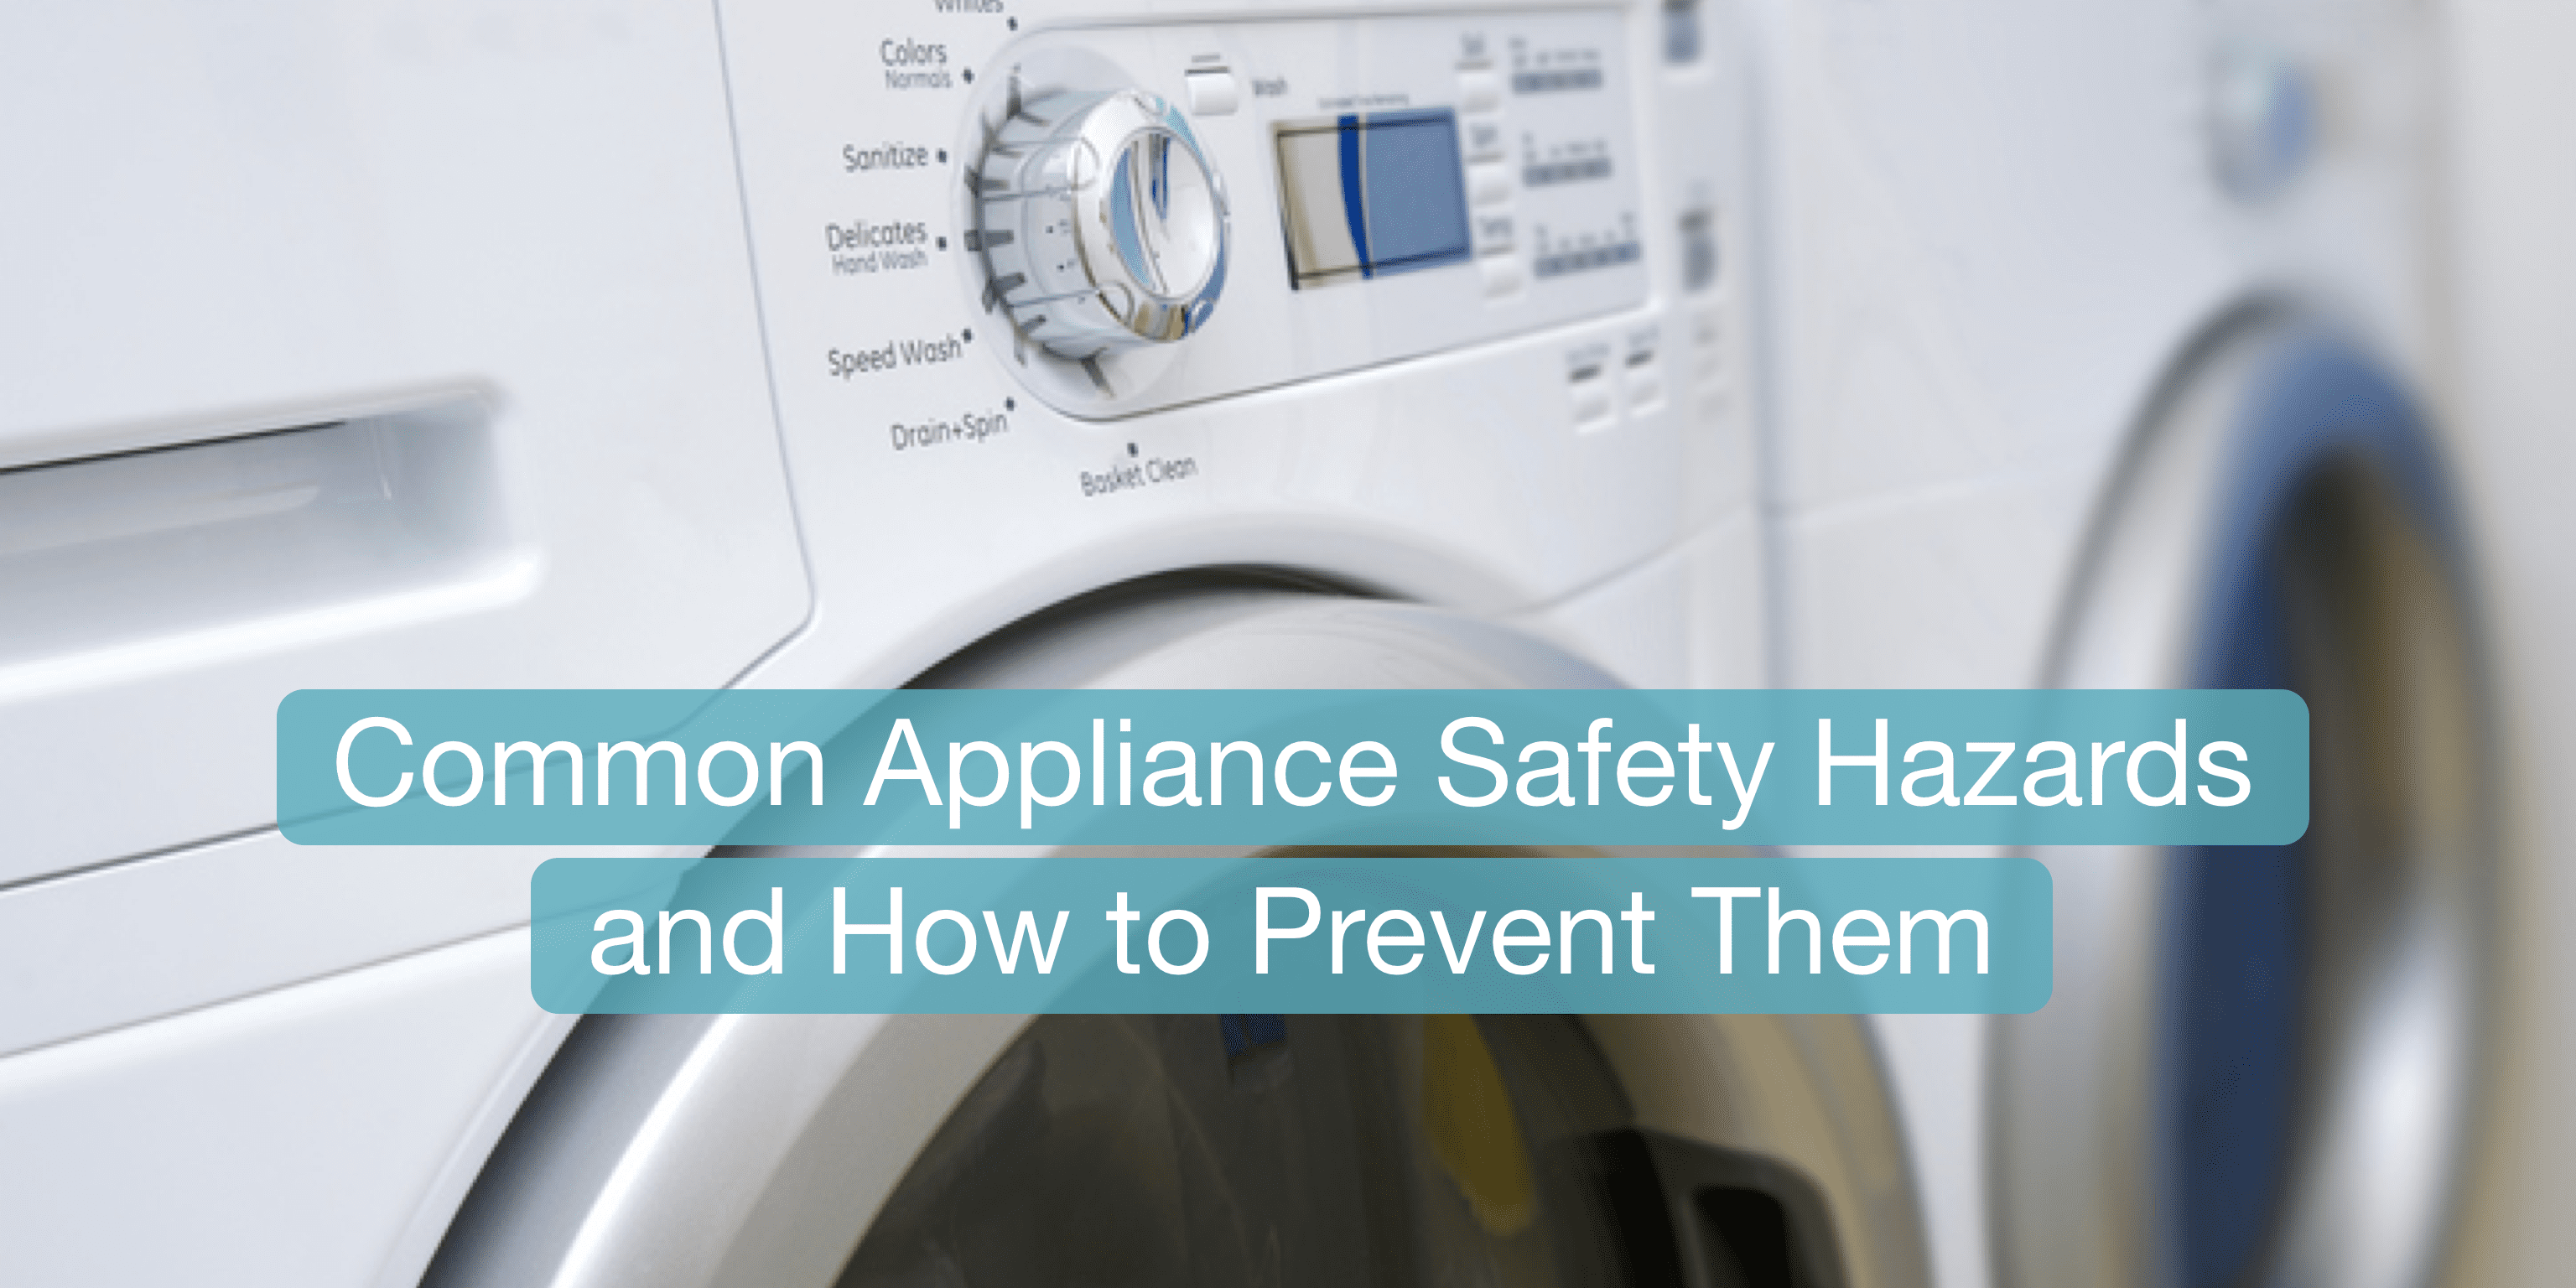 12 Common Appliance Safety Hazards & How to Prevent Them | SafeWise